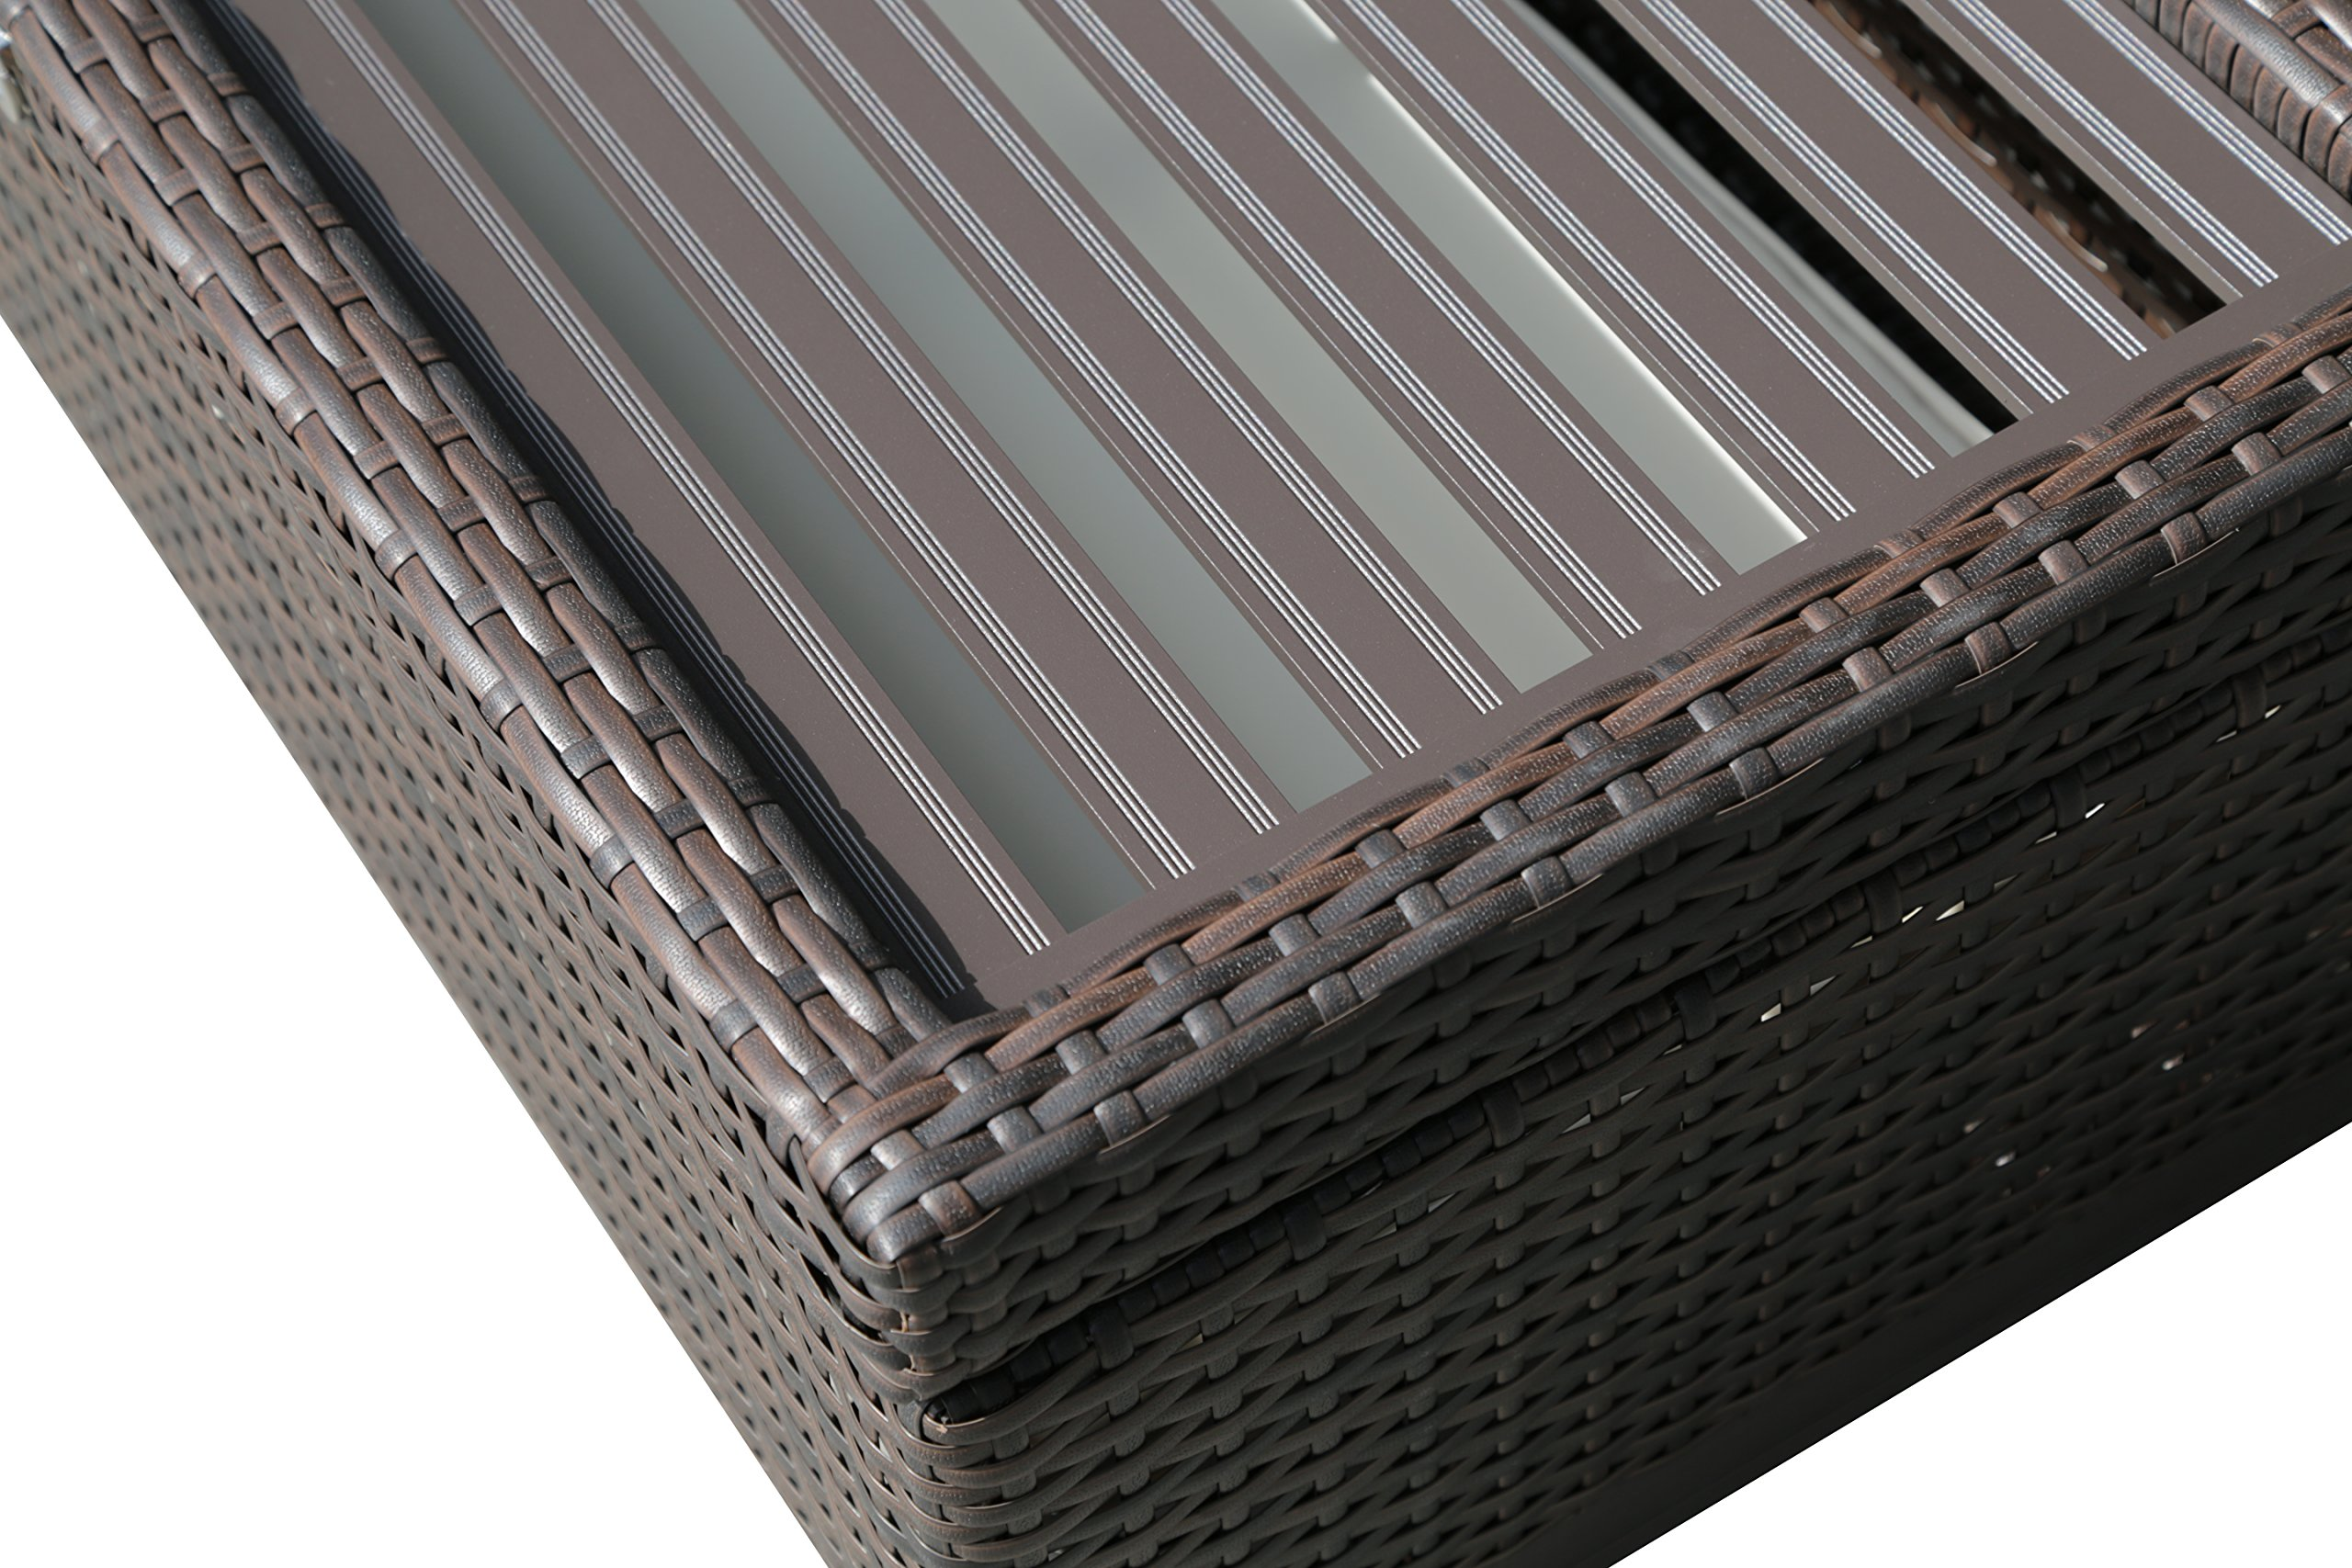 PATIOROMA Outdoor Patio Aluminum Frame Wicker Cushion Storage Ottoman Bench with Seat Cushion, Espresso Brown by PATIOROMA (Image #5)